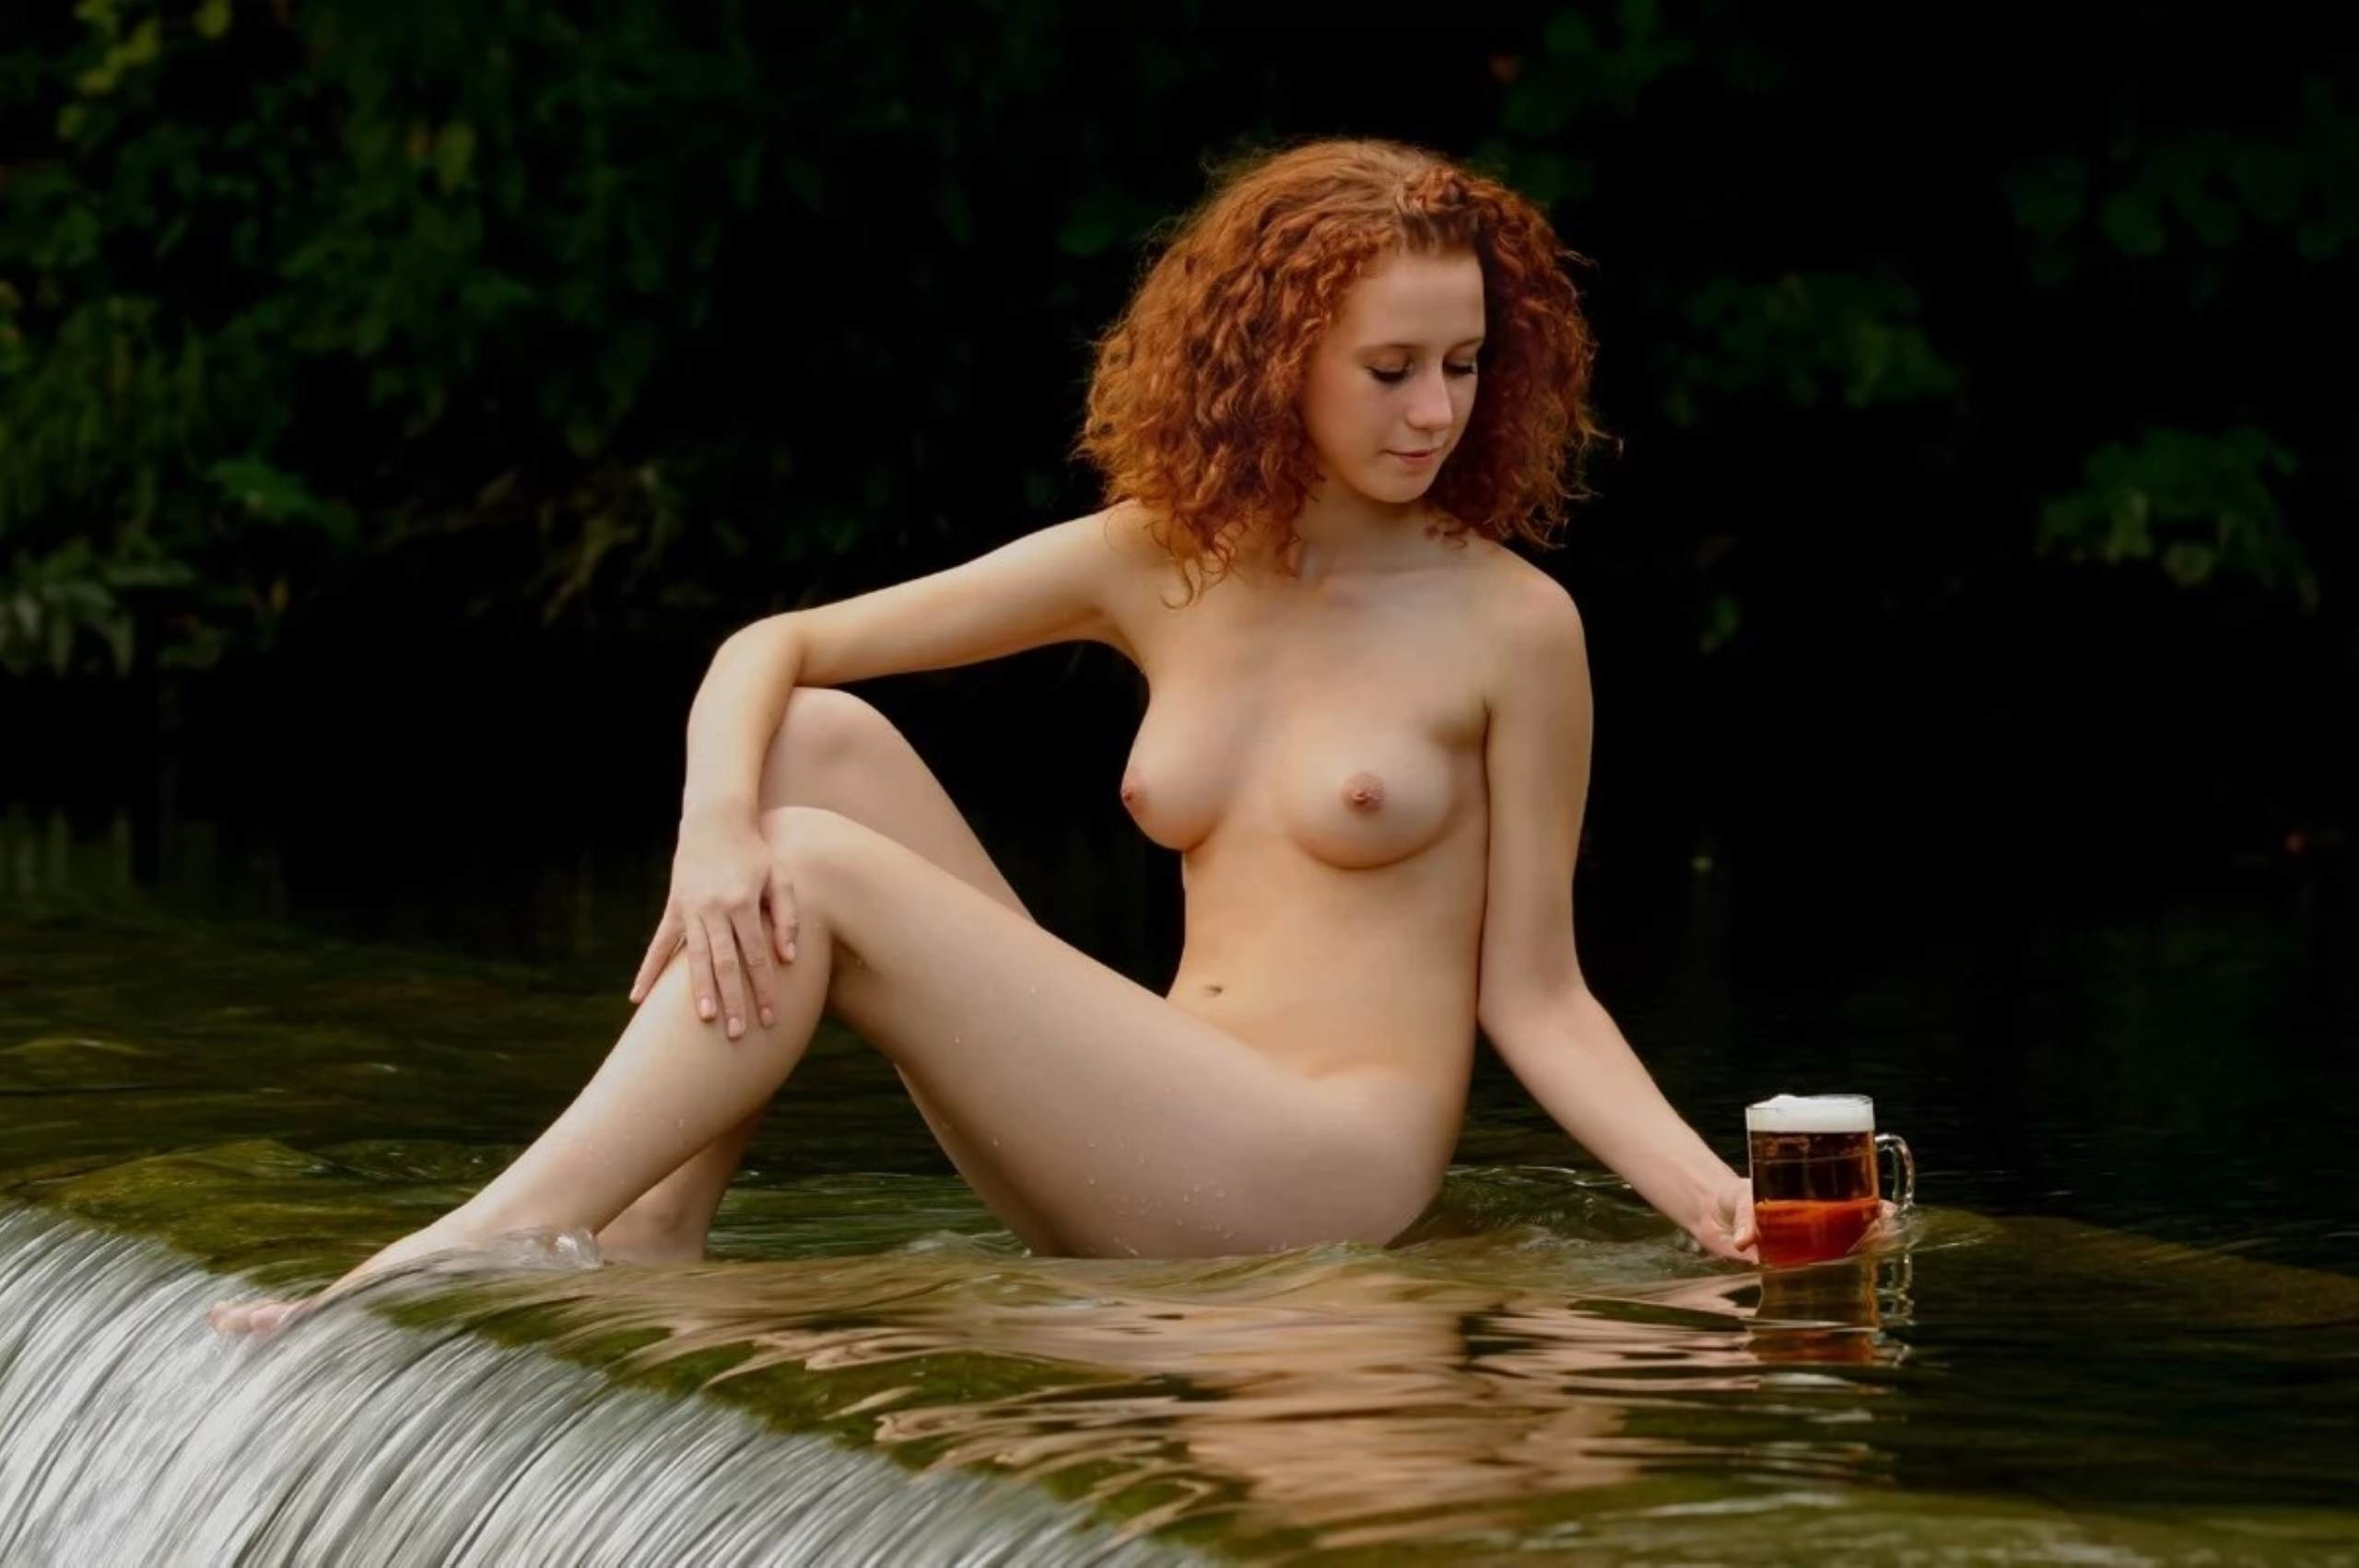 Remarkable, Beer and naked boobies what from